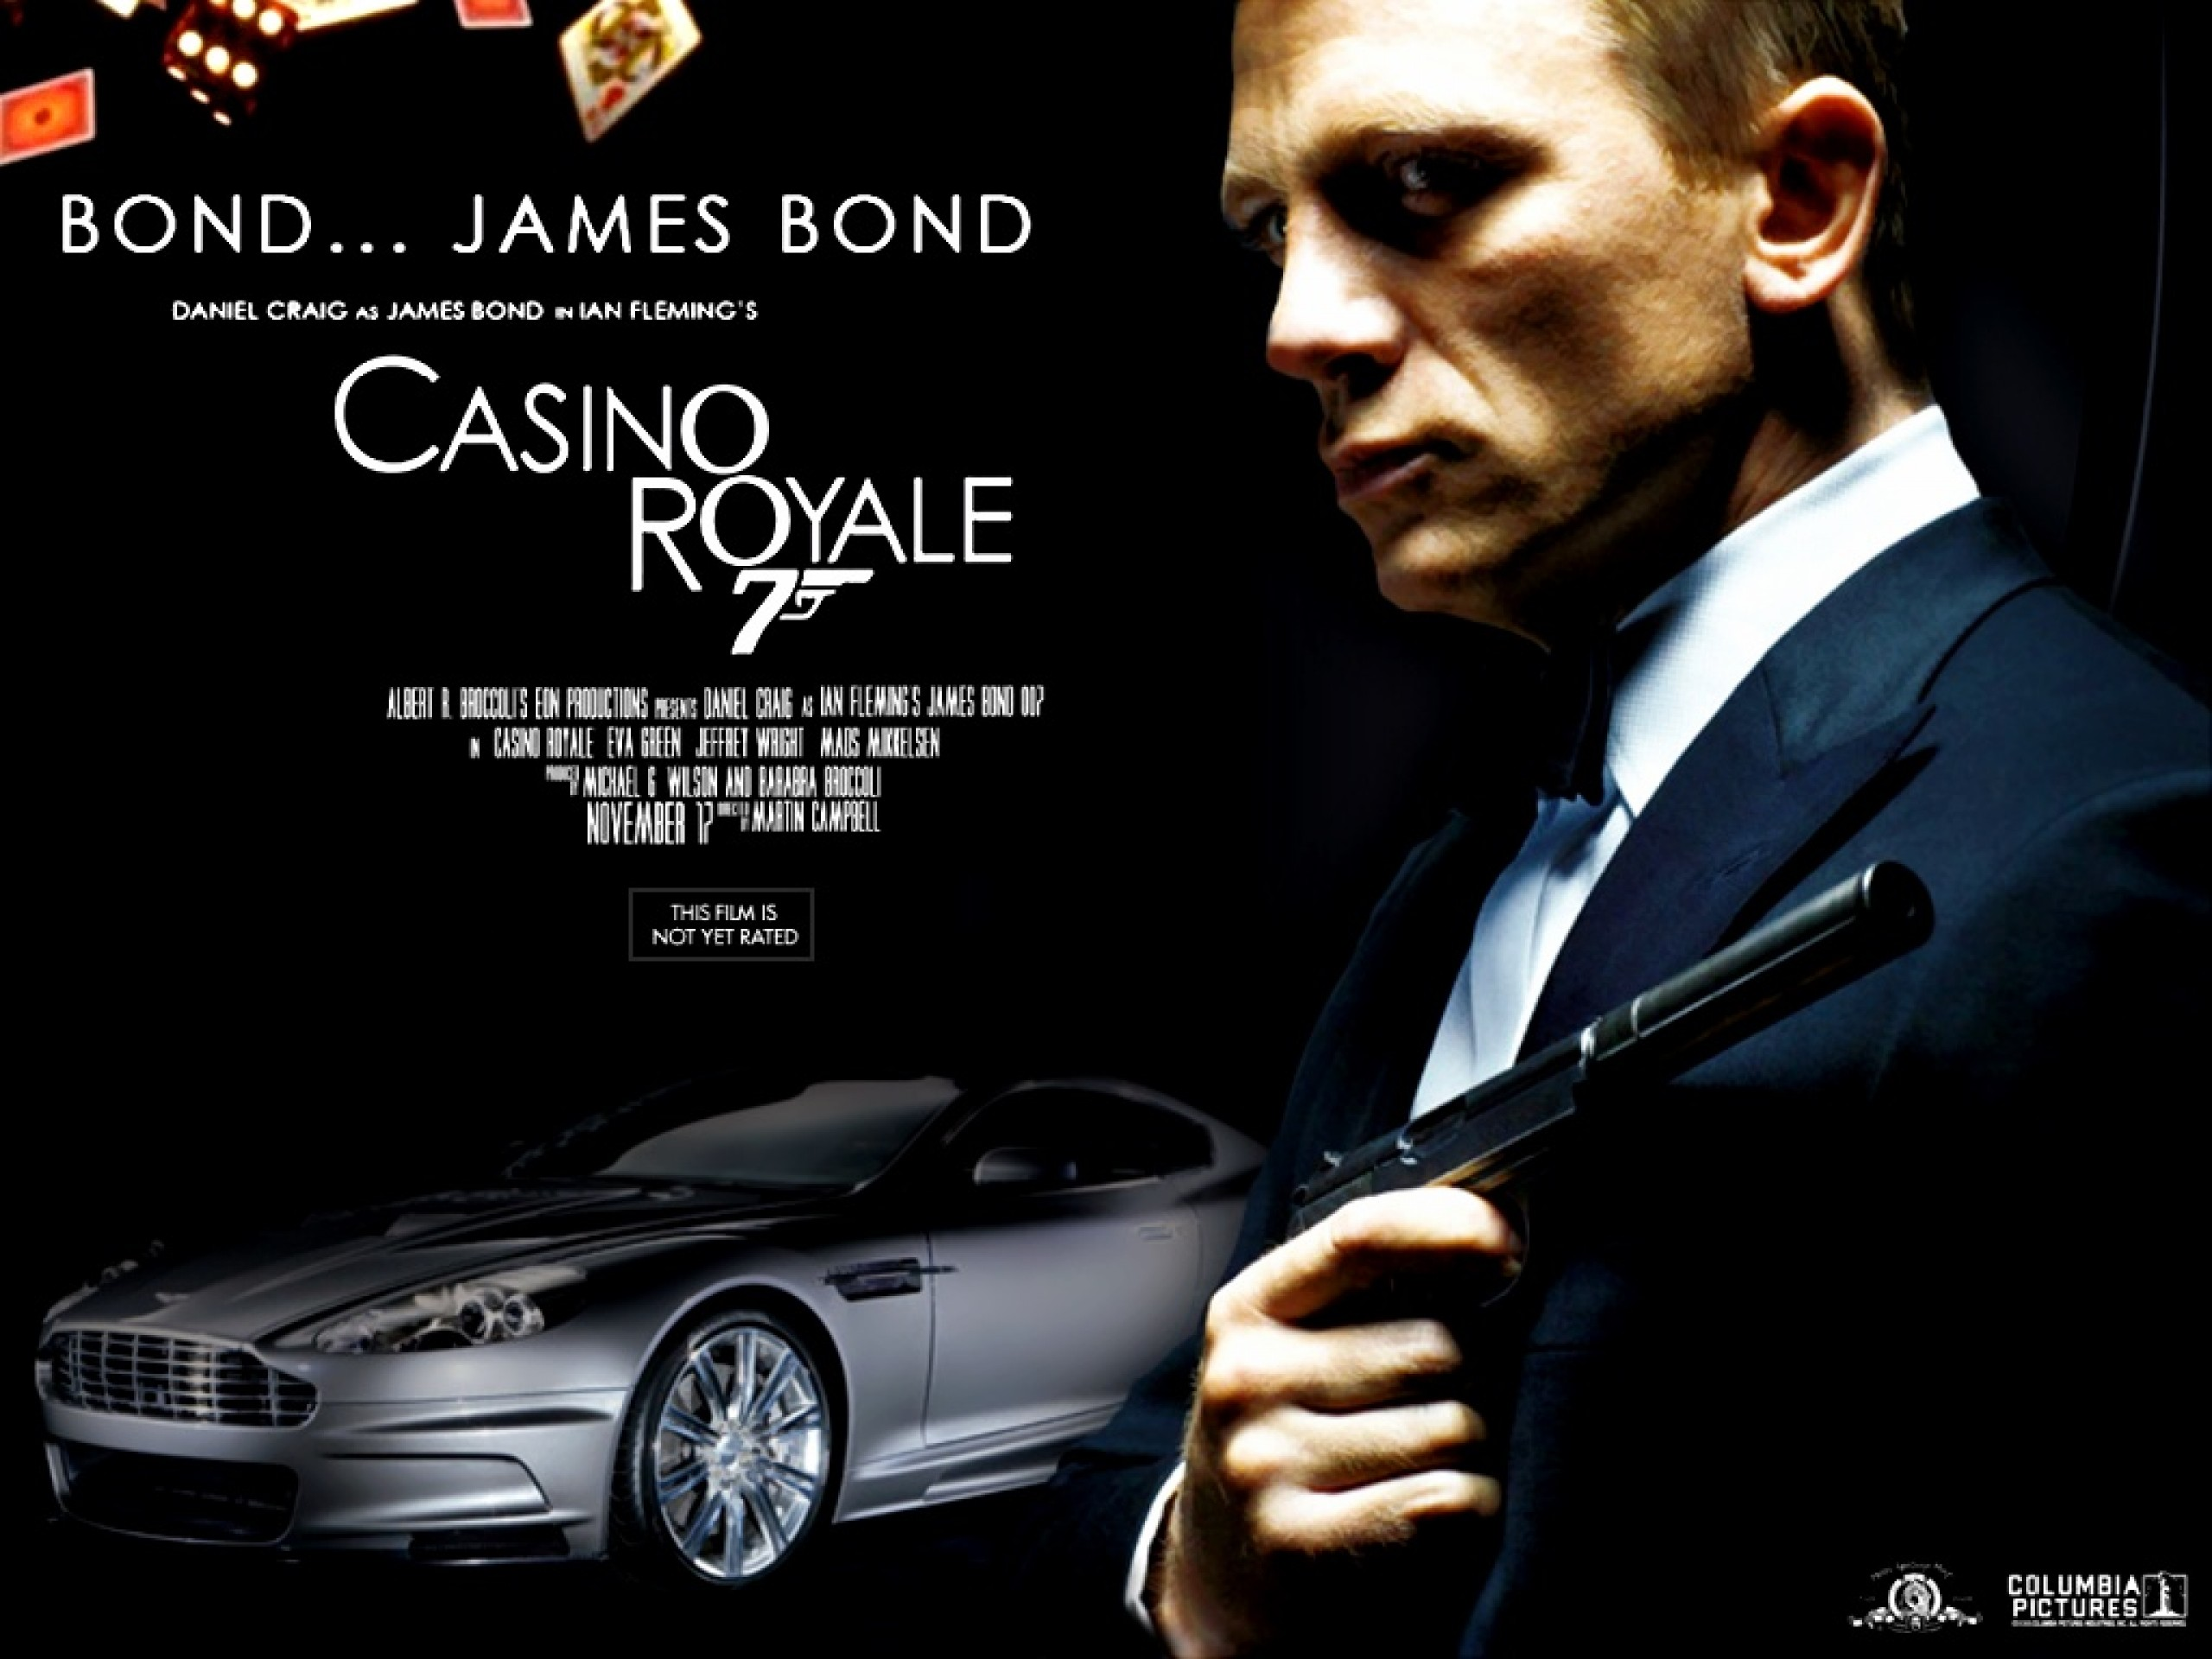 casino royale james bond full movie online casino deutsch